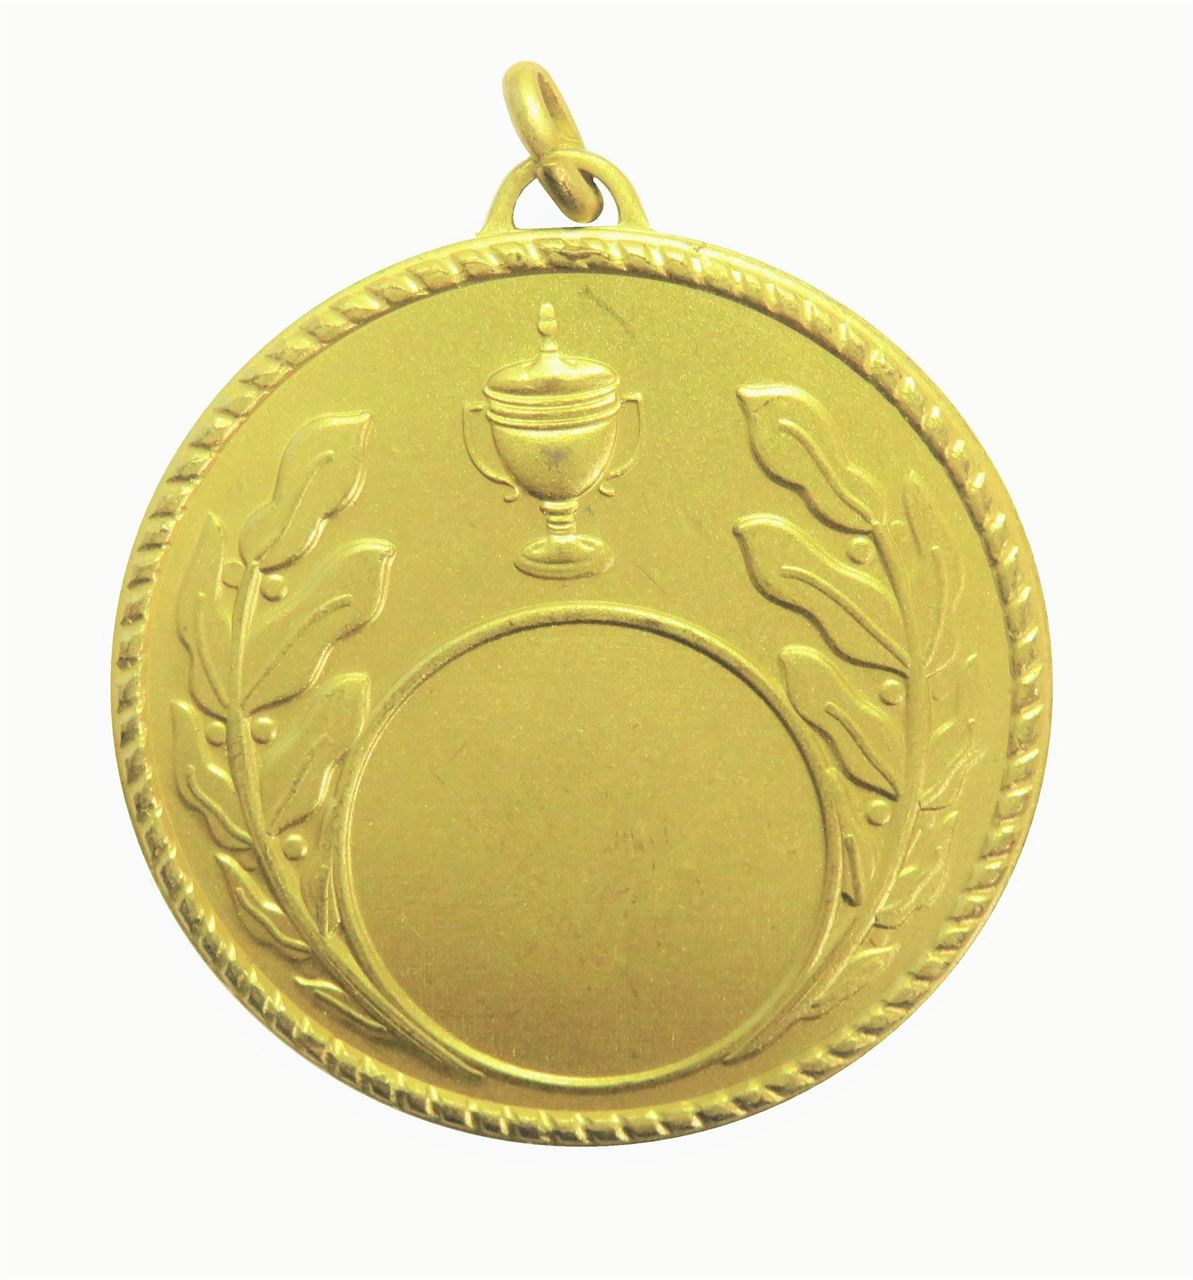 Gold Quality Laurel & Cup Medal (size: 50mm) - 5804E